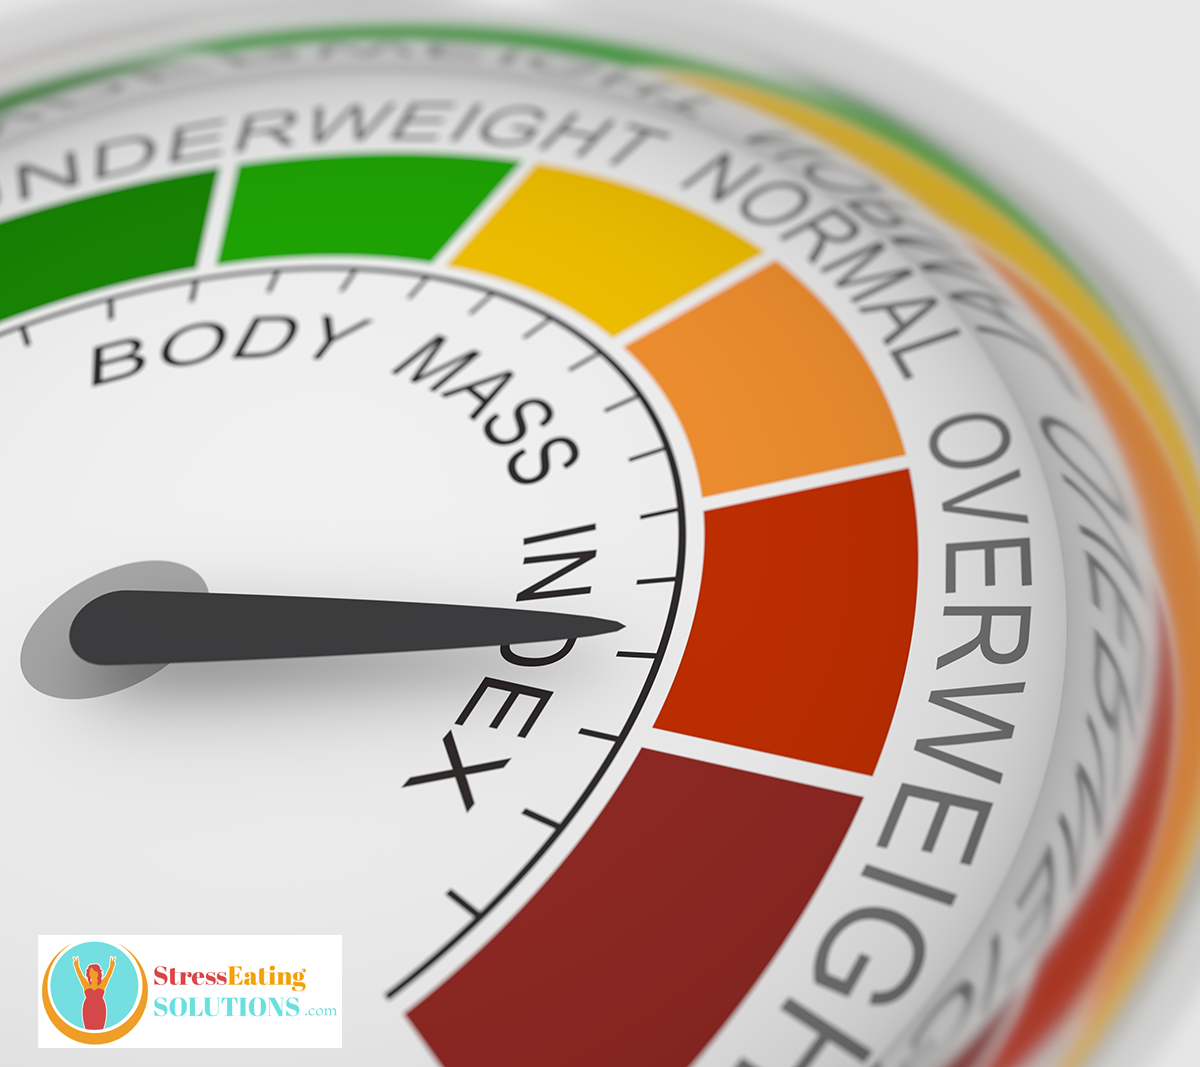 BMI index chart is misleading at best